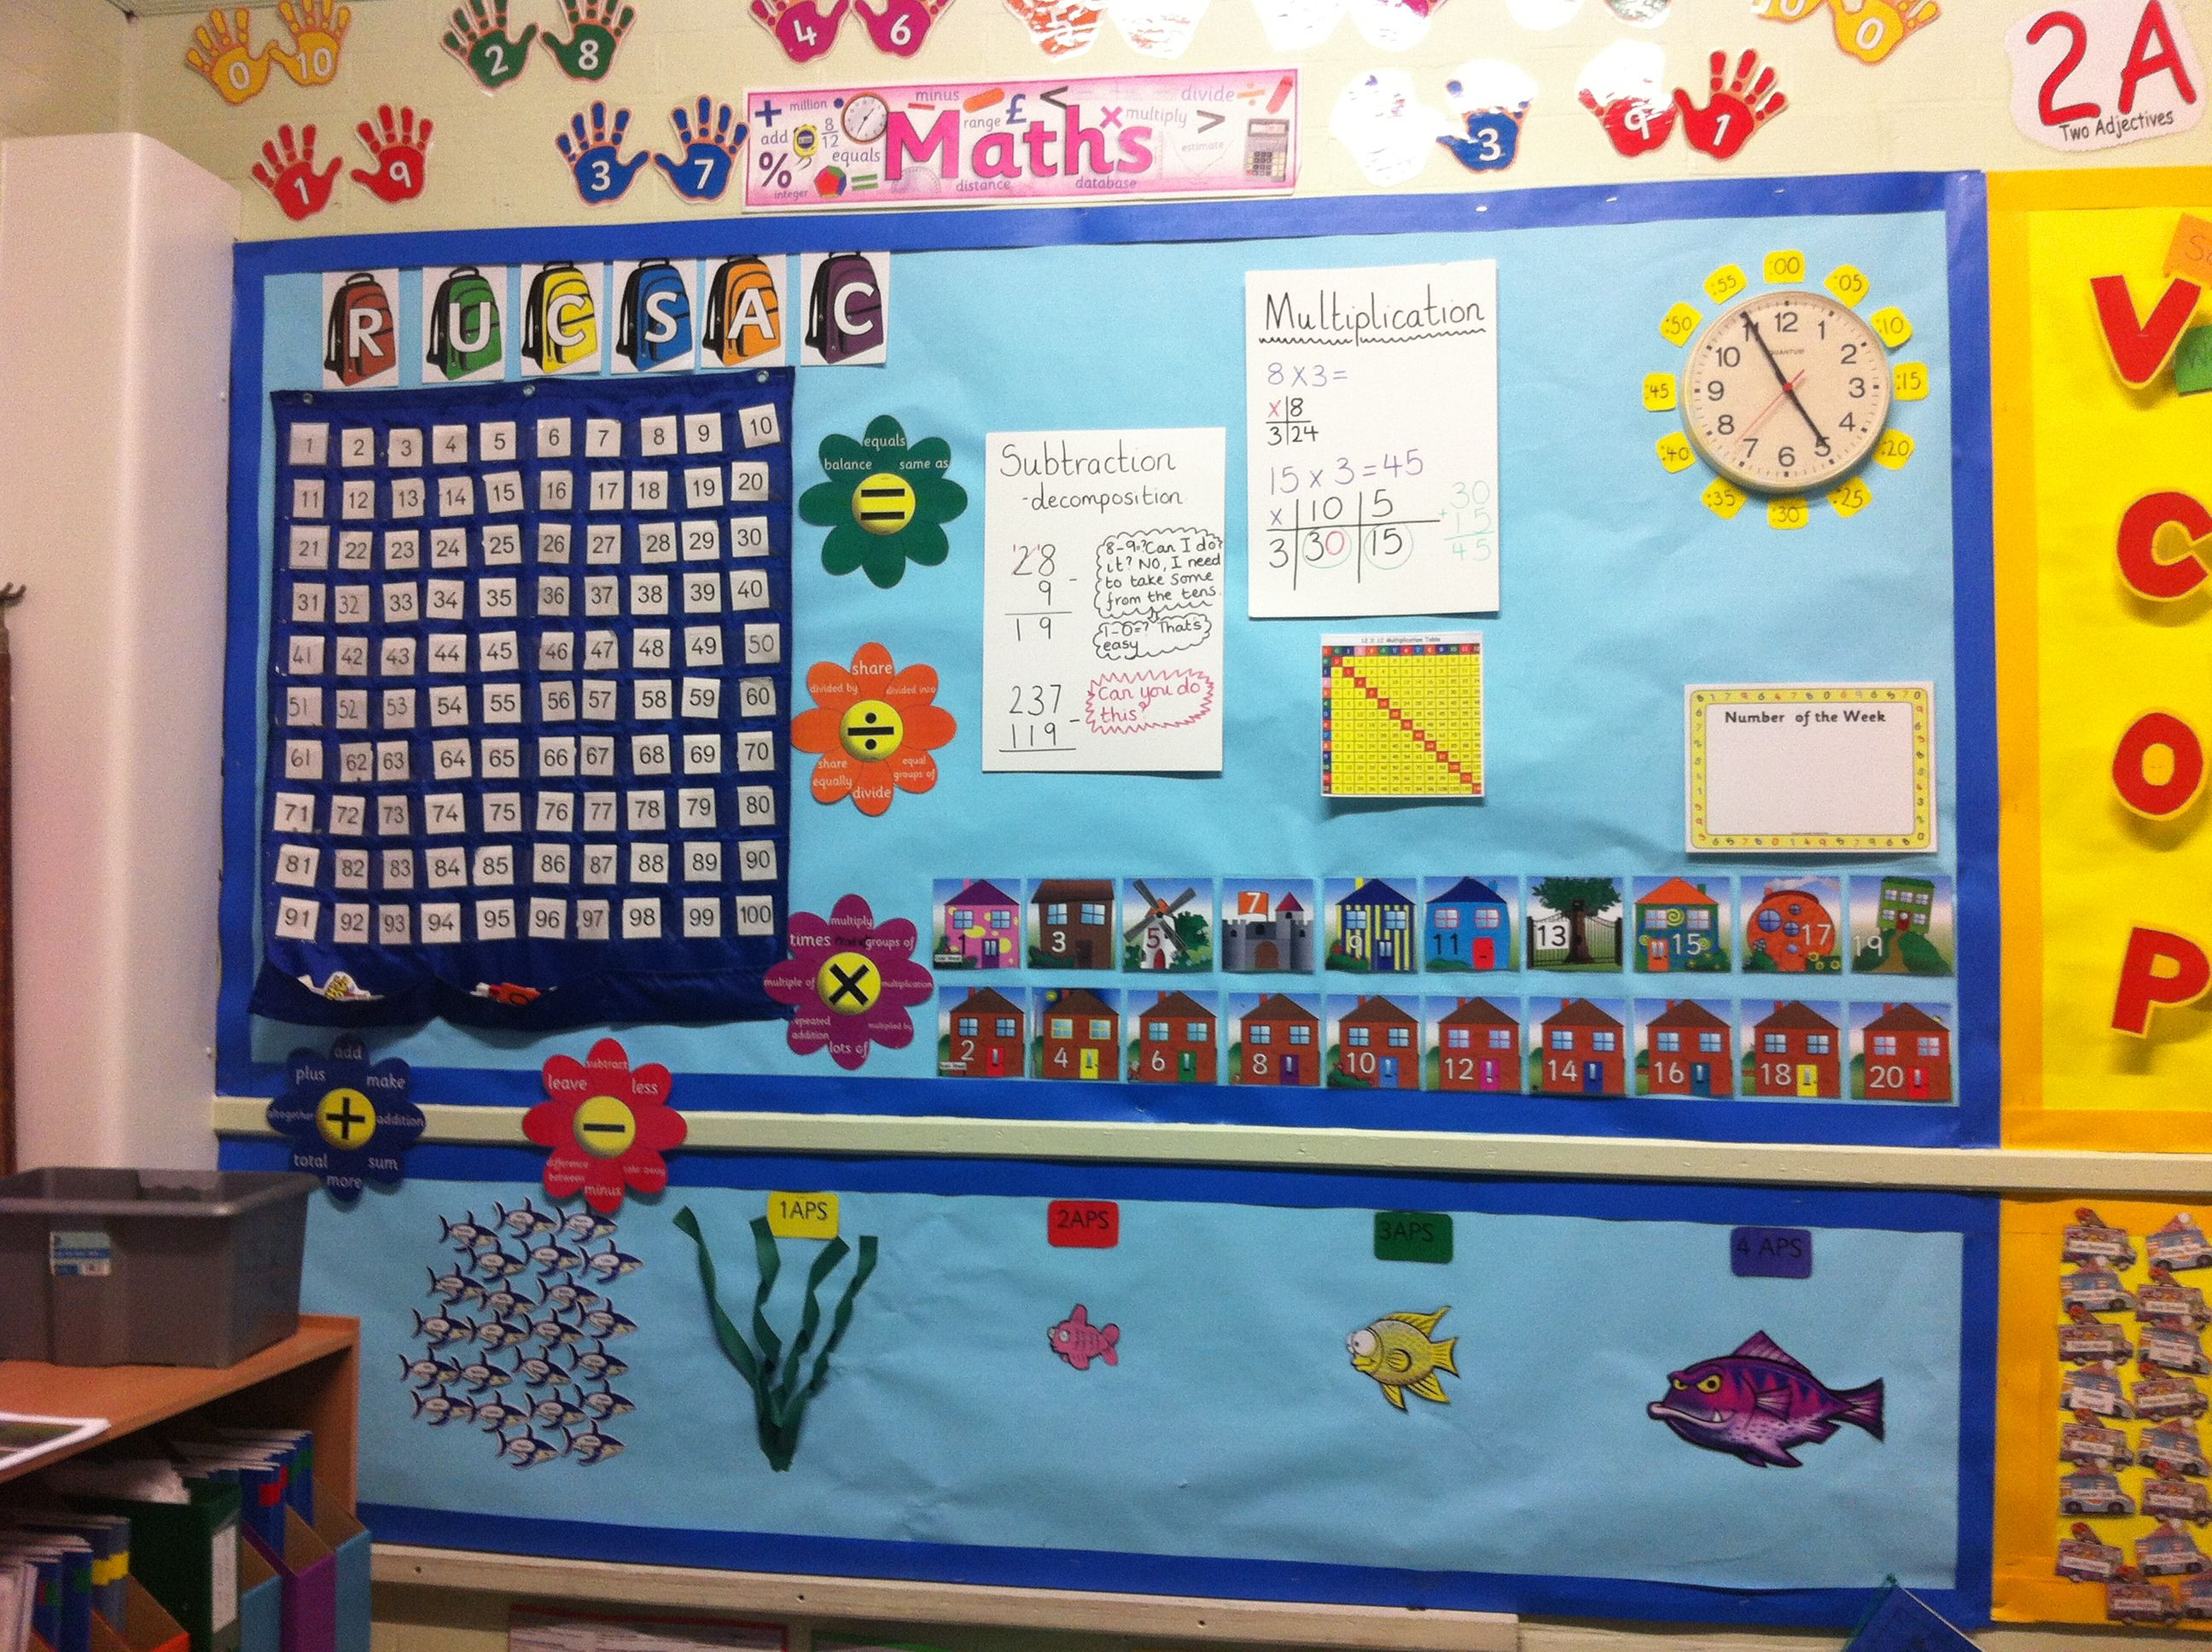 My Maths Learning Wall At School  Elementary Math. Home Living Ideas Etsy. Kitchen Decorating Ideas 2015. Yard Transformation Ideas. Primitive Rustic Kitchen Ideas. Home Ideas Ikea. Cool Drawing Ideas Youtube. Small Backyard Pool Toronto. Unique Pumpkin Carving Ideas/stencils